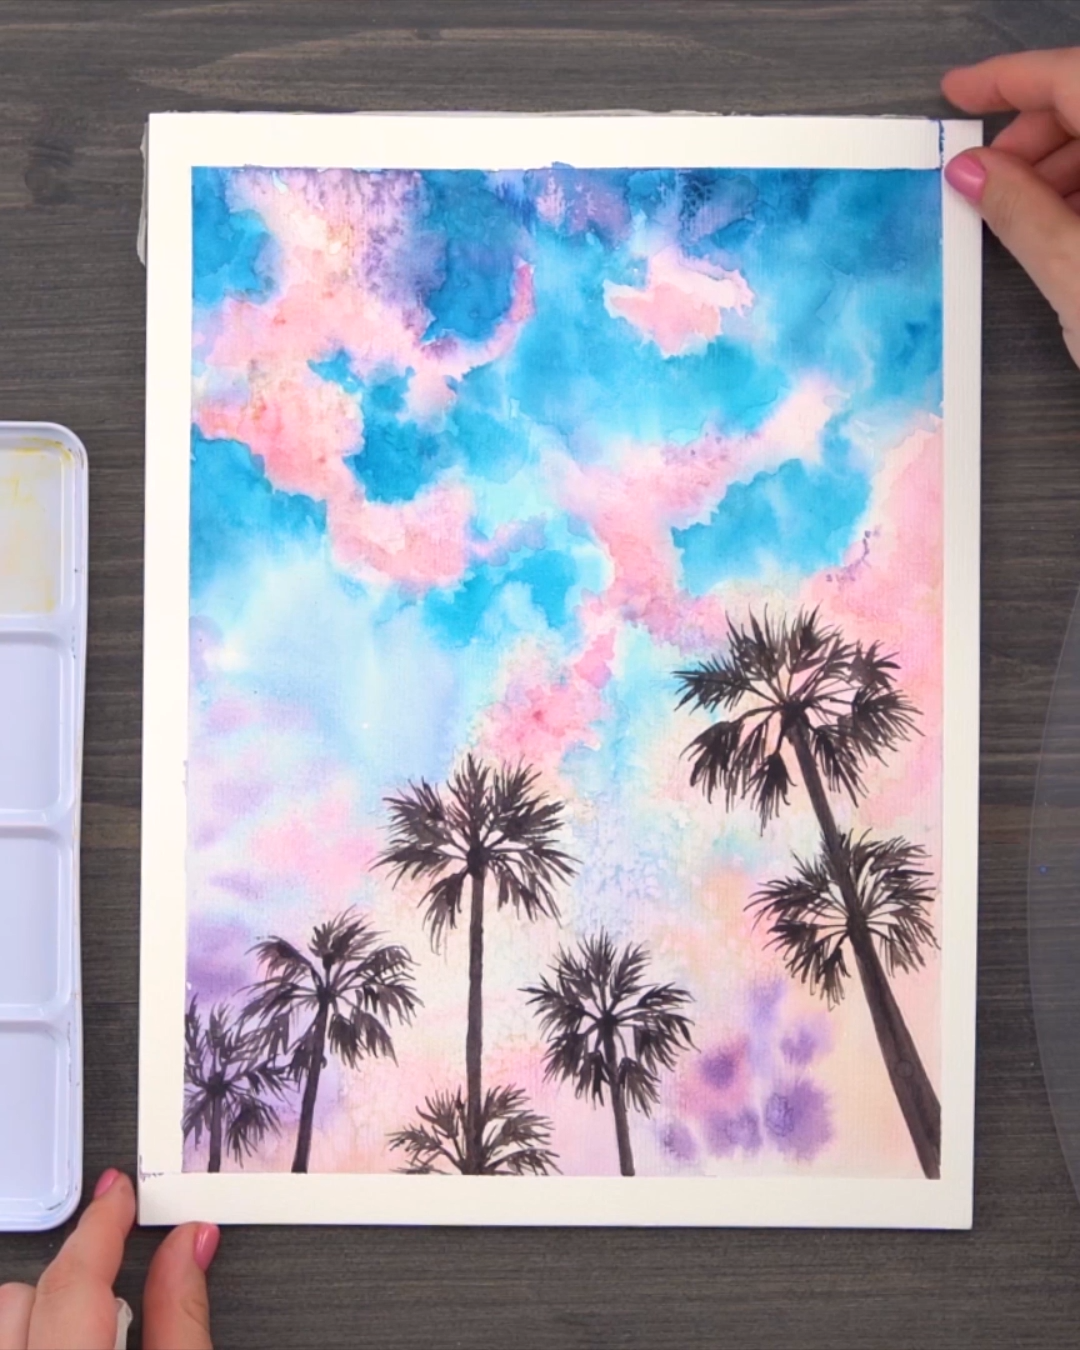 Cotton Candy Skies with Watercolor Paint